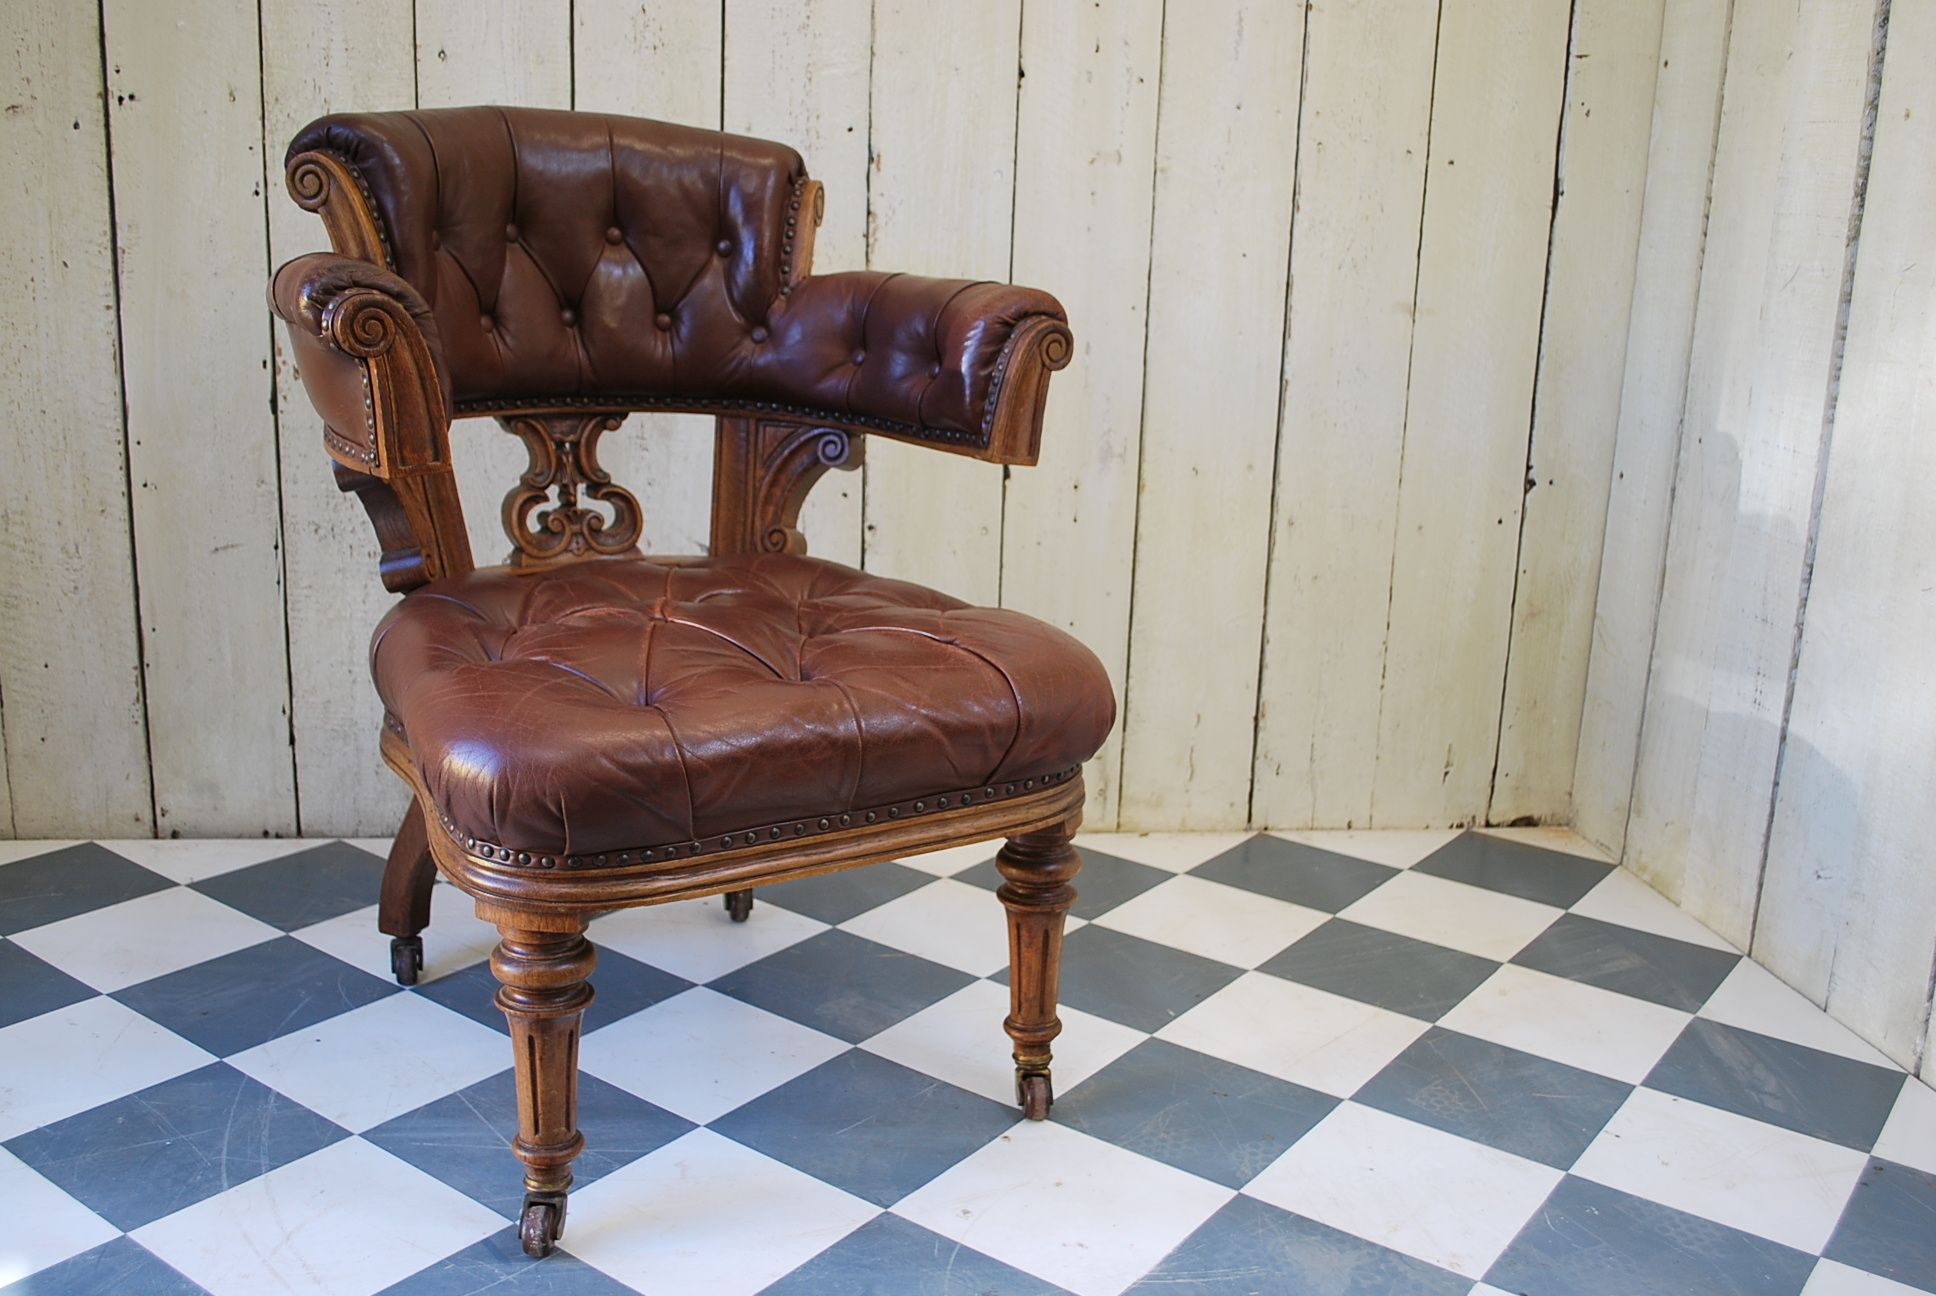 Enjoyable Oversized Oak And Leather Desk Chair For Sale Cotswolds Uk Beatyapartments Chair Design Images Beatyapartmentscom